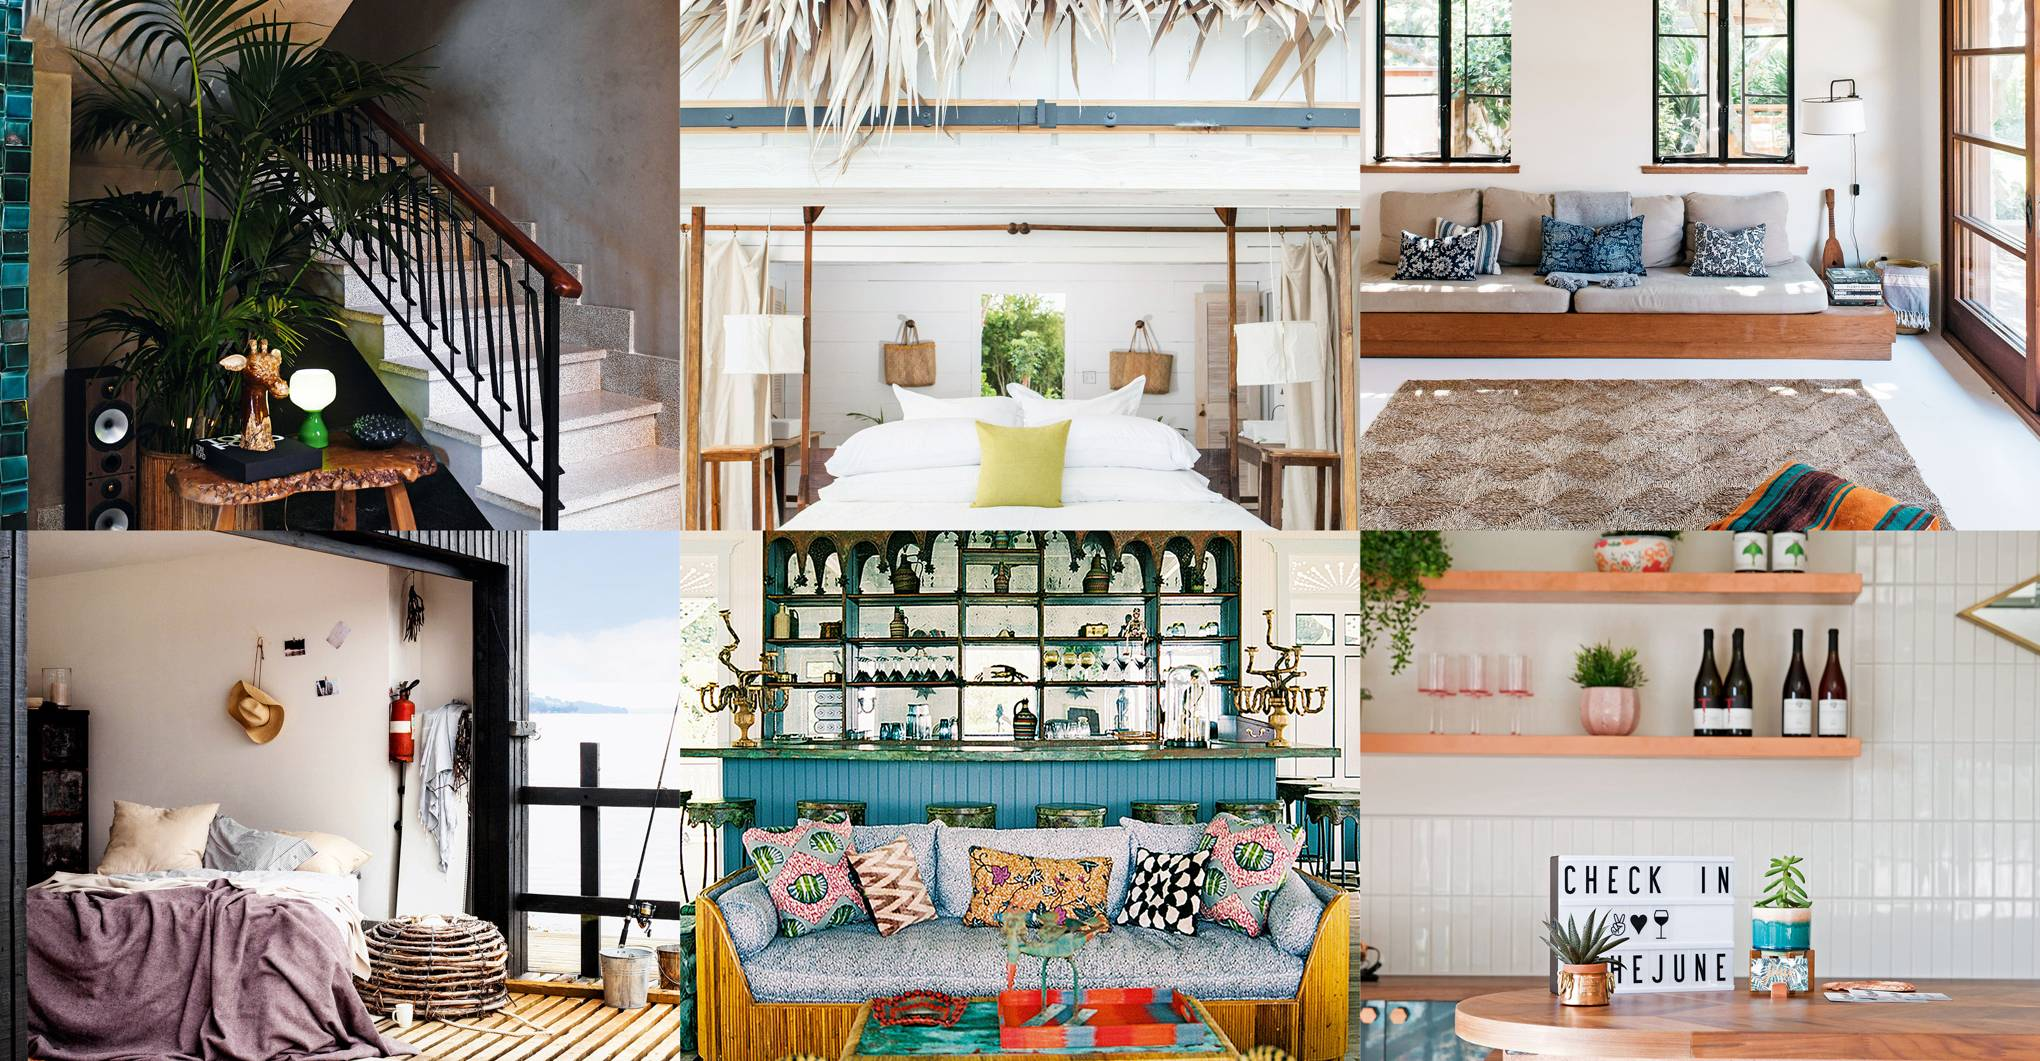 The holiday-inspired interior design trend